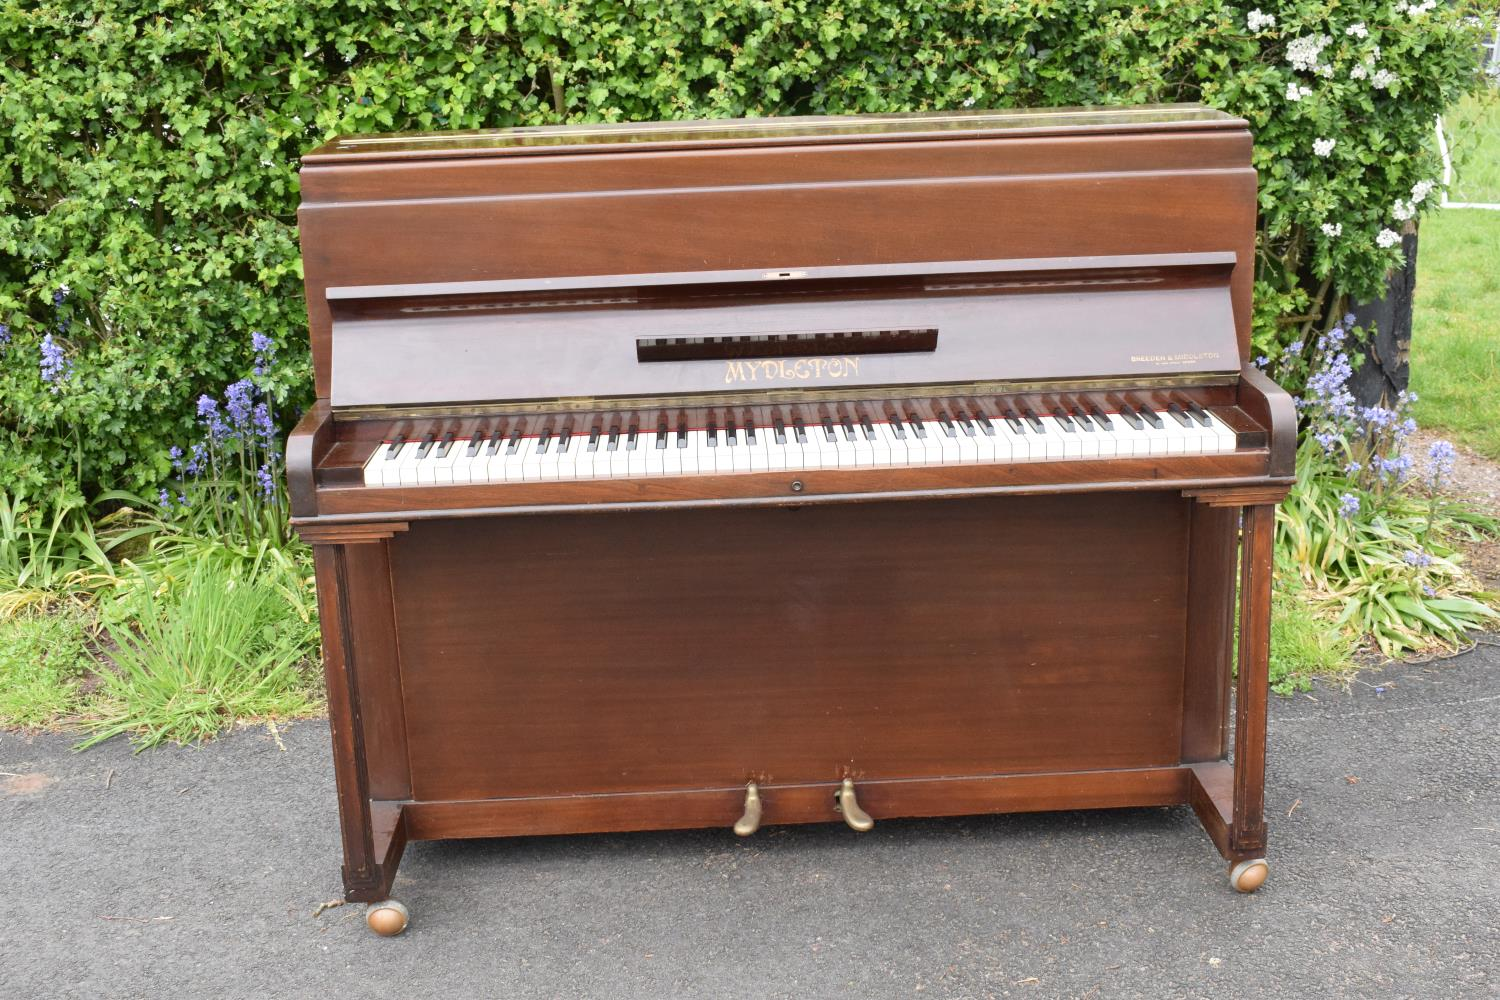 A Breedon and Middleton 'Mydleton' of 42 High Street Crewe upright wooden piano with 85 keys